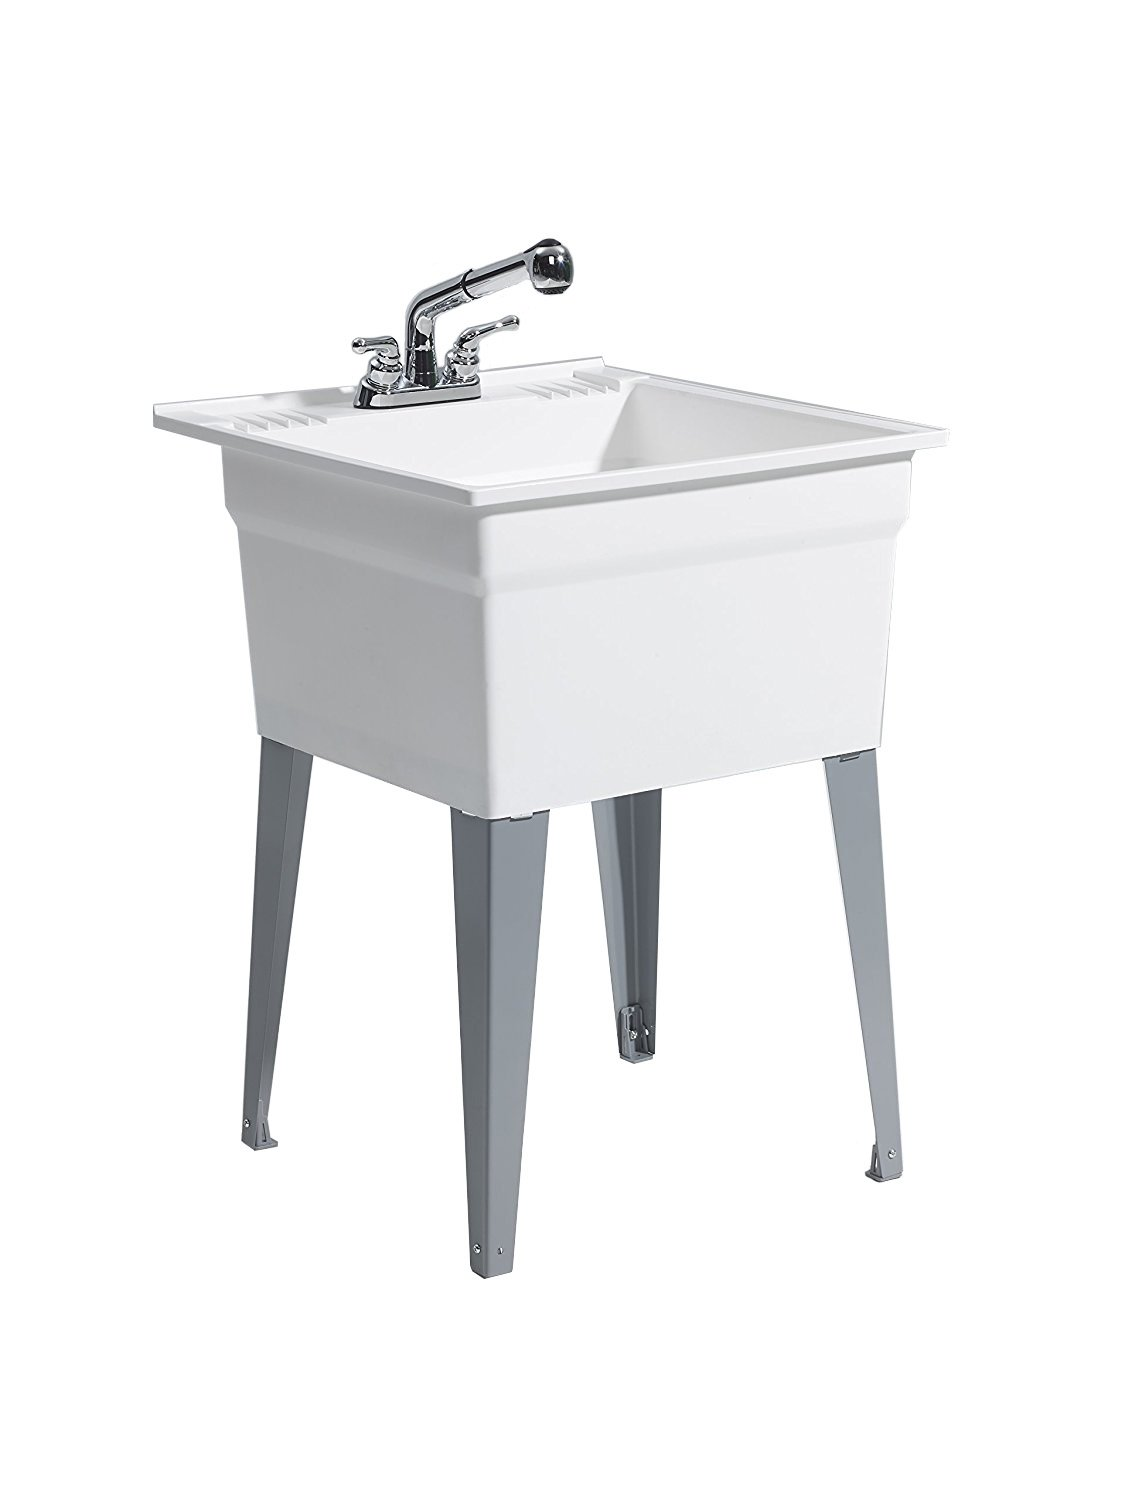 CASHEL 1960-32-21 Sink - Fully Loaded Sink Kit, Steel Leg, White